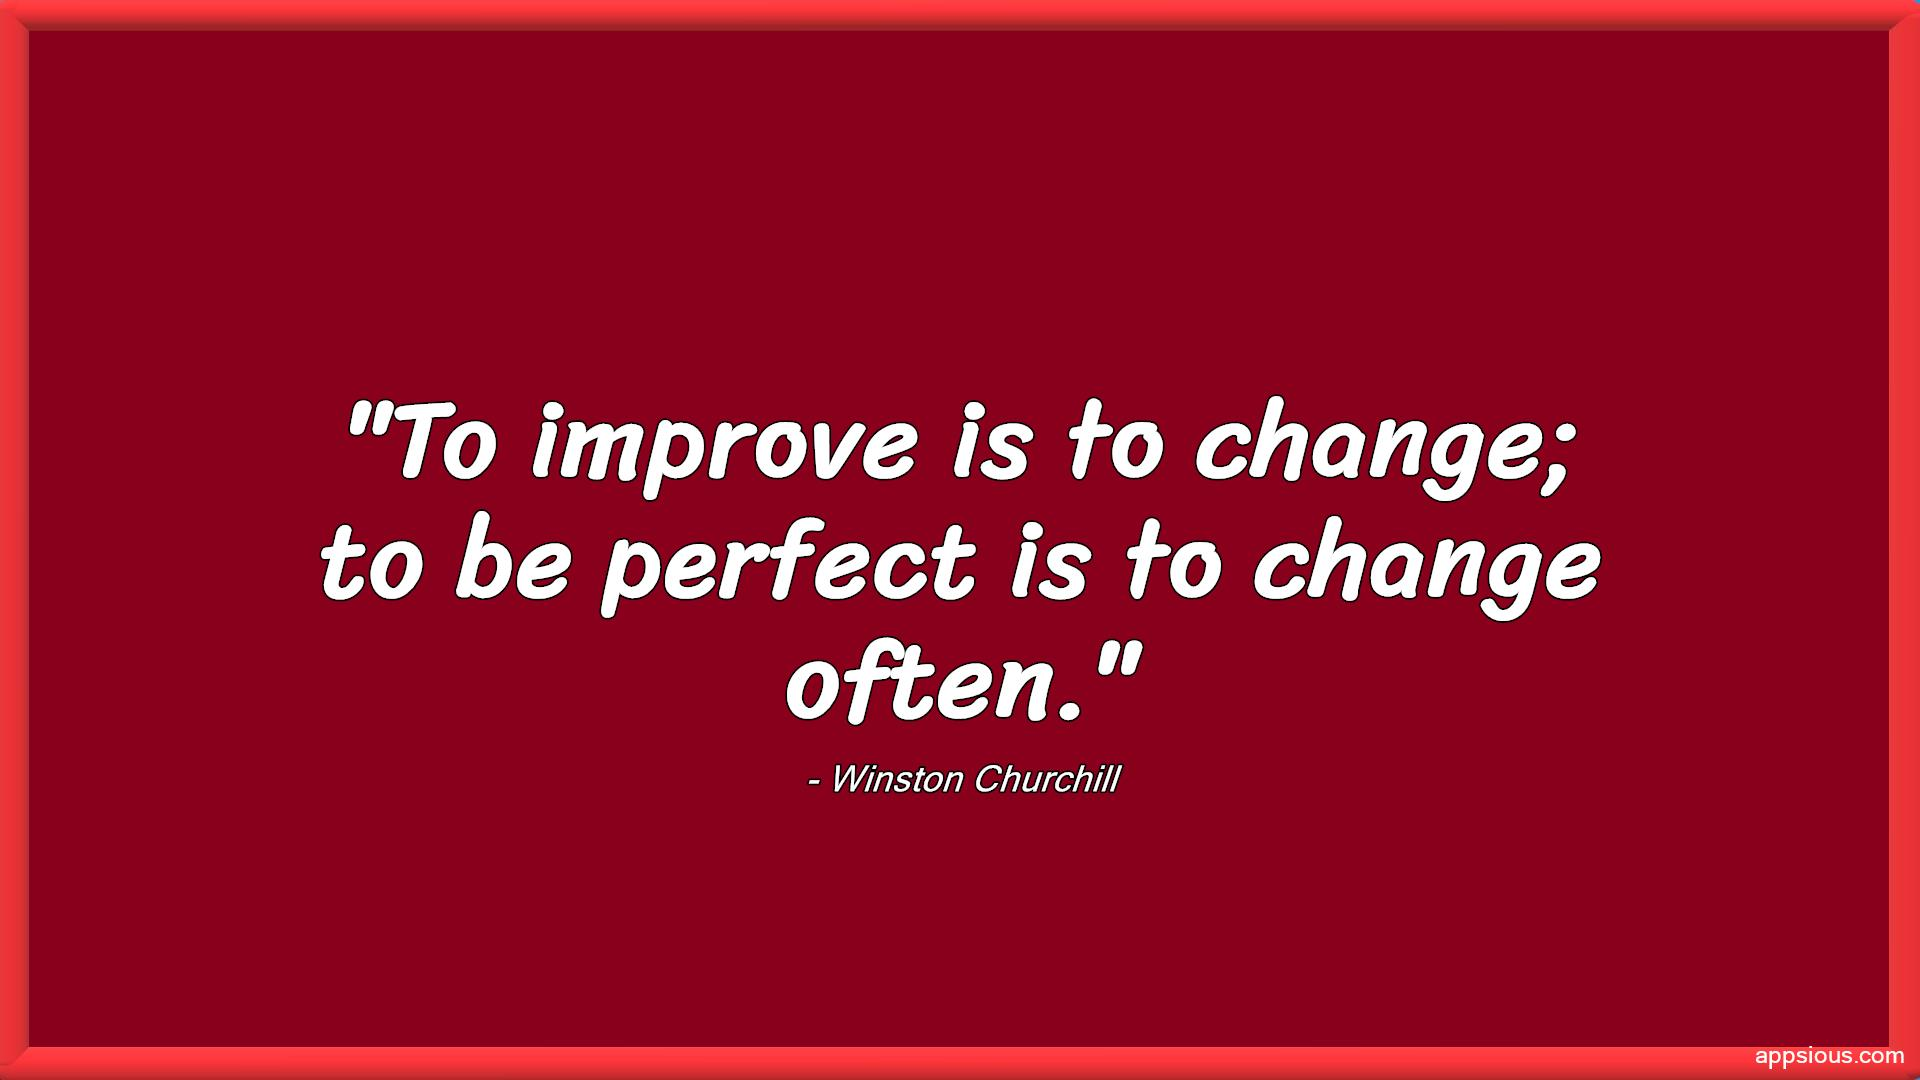 To improve is to change; to be perfect is to change often.